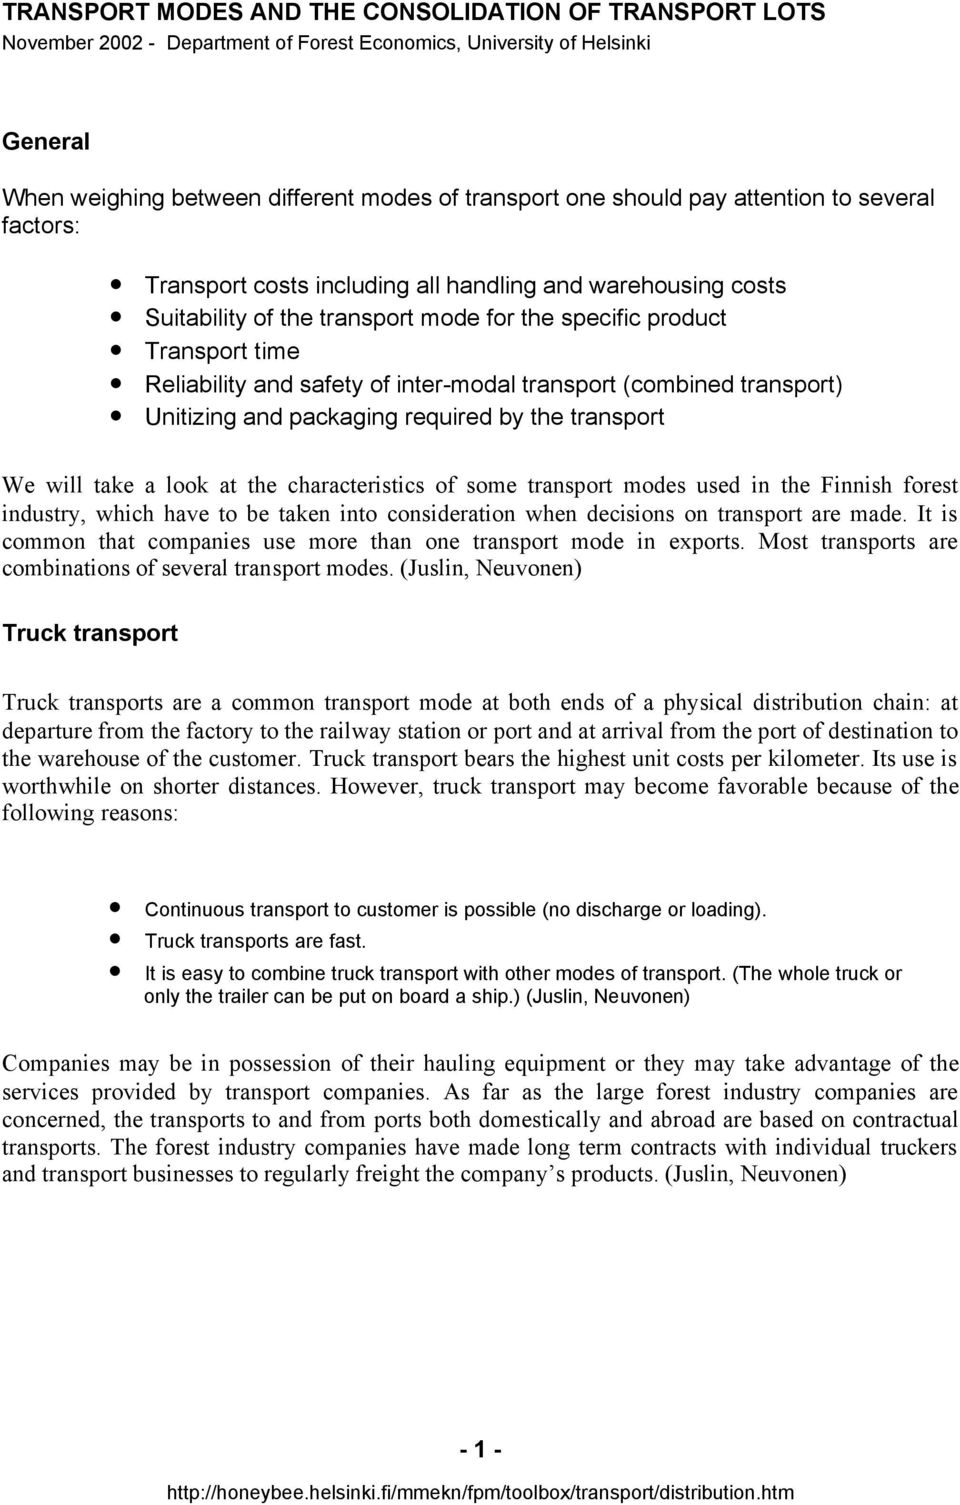 characteristics of some transport modes used in the Finnish forest industry, which have to be taken into consideration when decisions on transport are made.